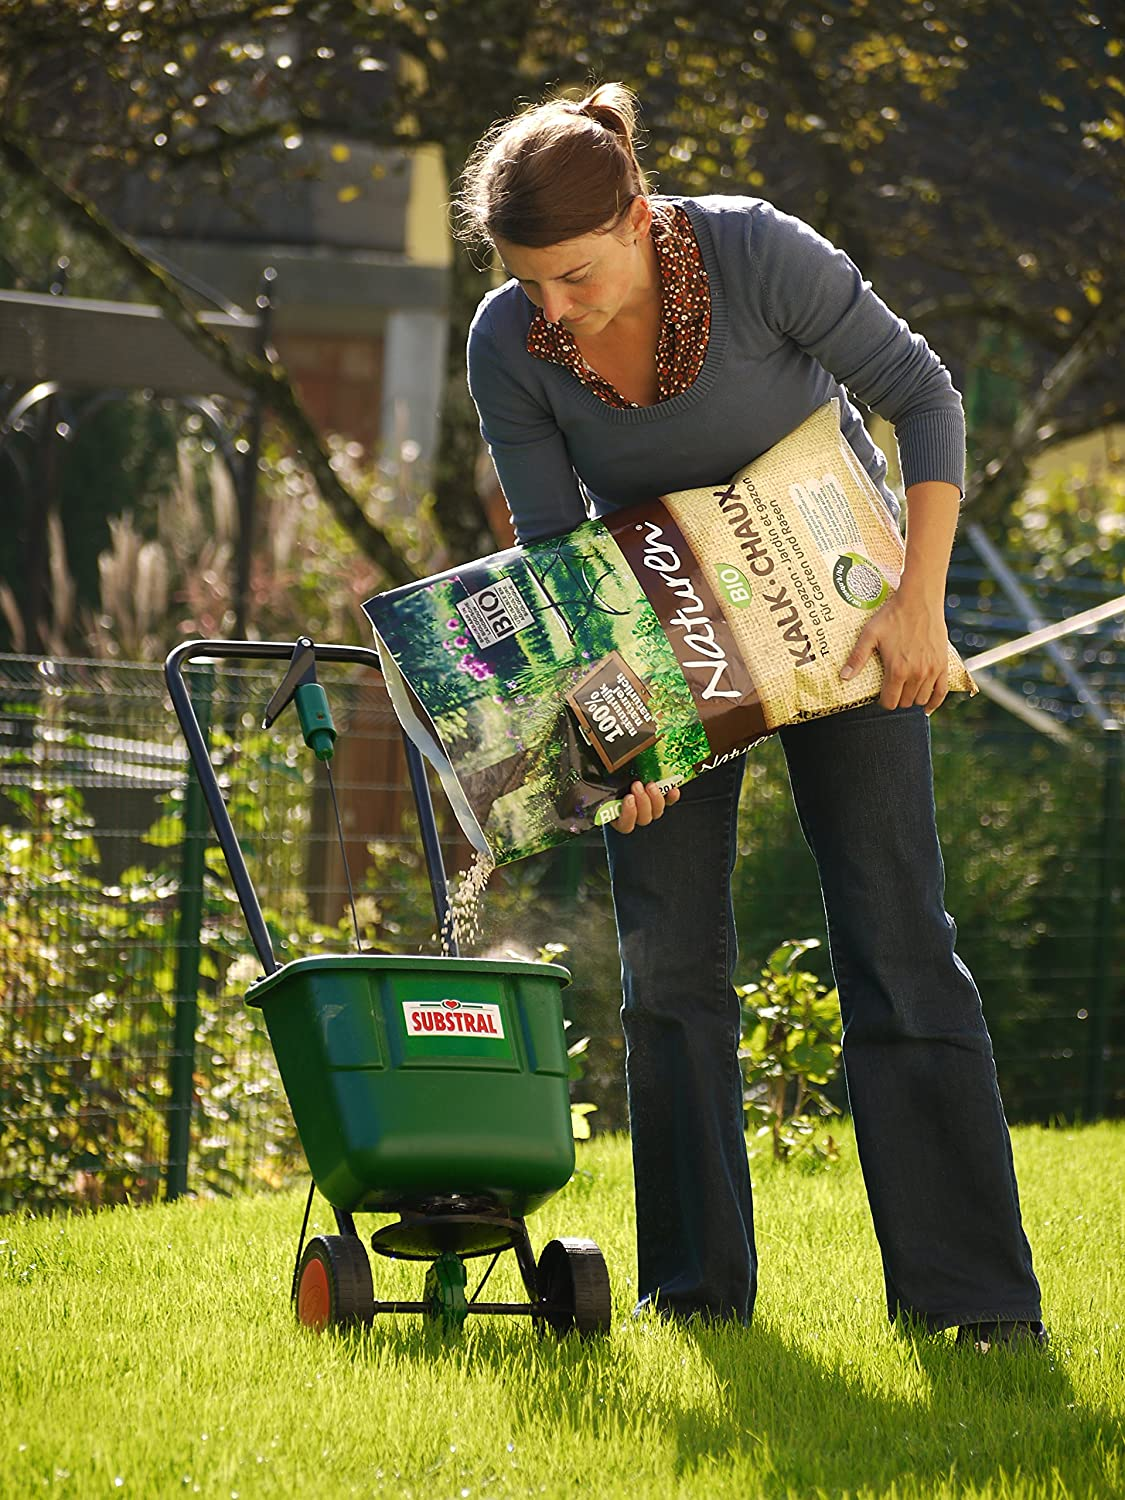 Substral EasyGreen Universal Centrifugal Broadcast Spreader